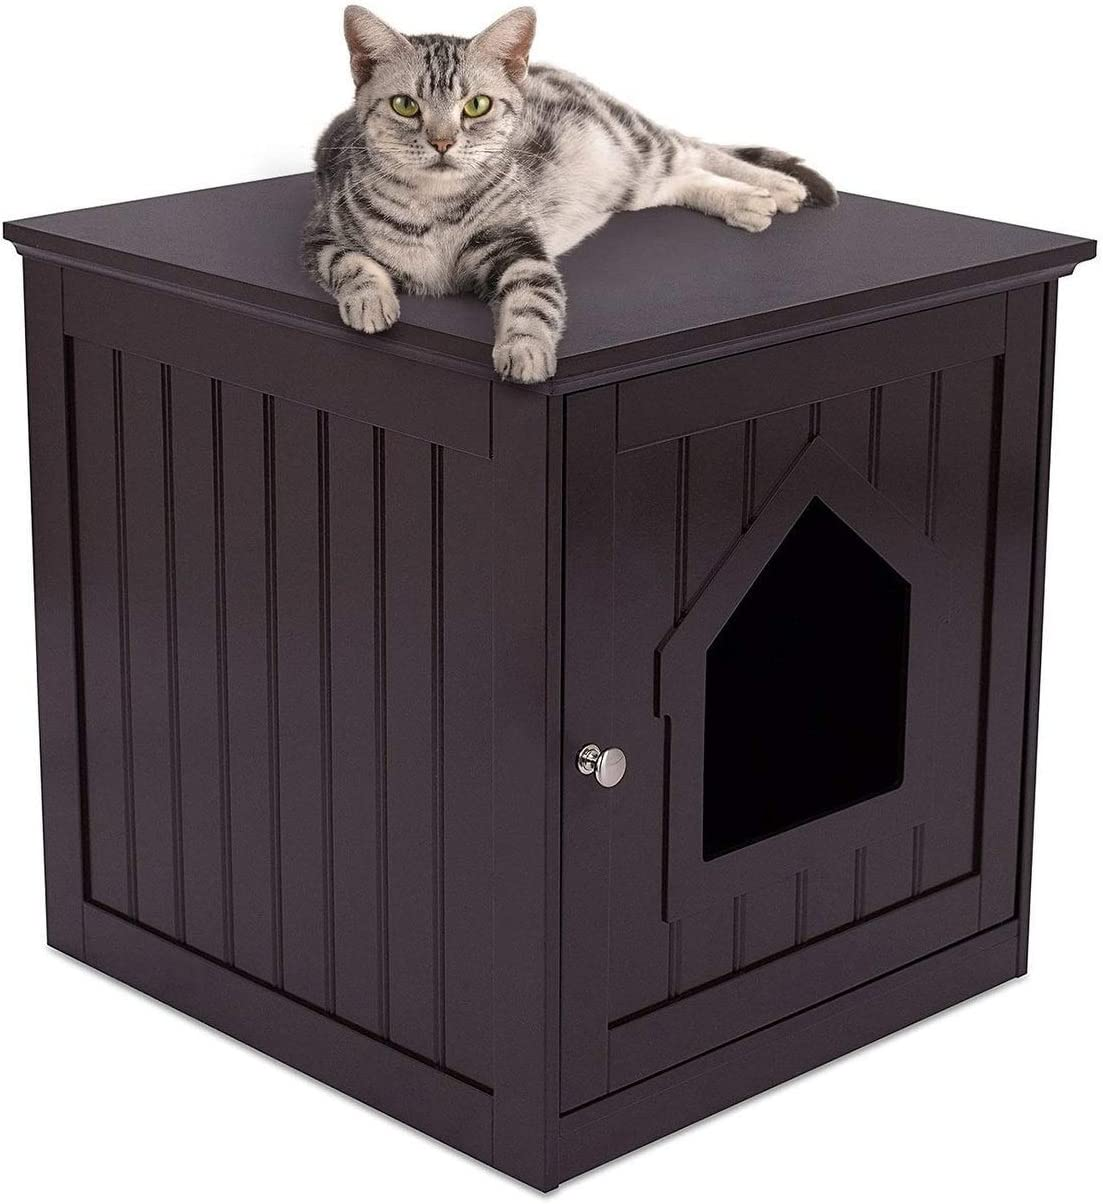 Decorative Cat Max 59% OFF House Japan's largest assortment Side Table Cra Pet Indoor Nightstand Home